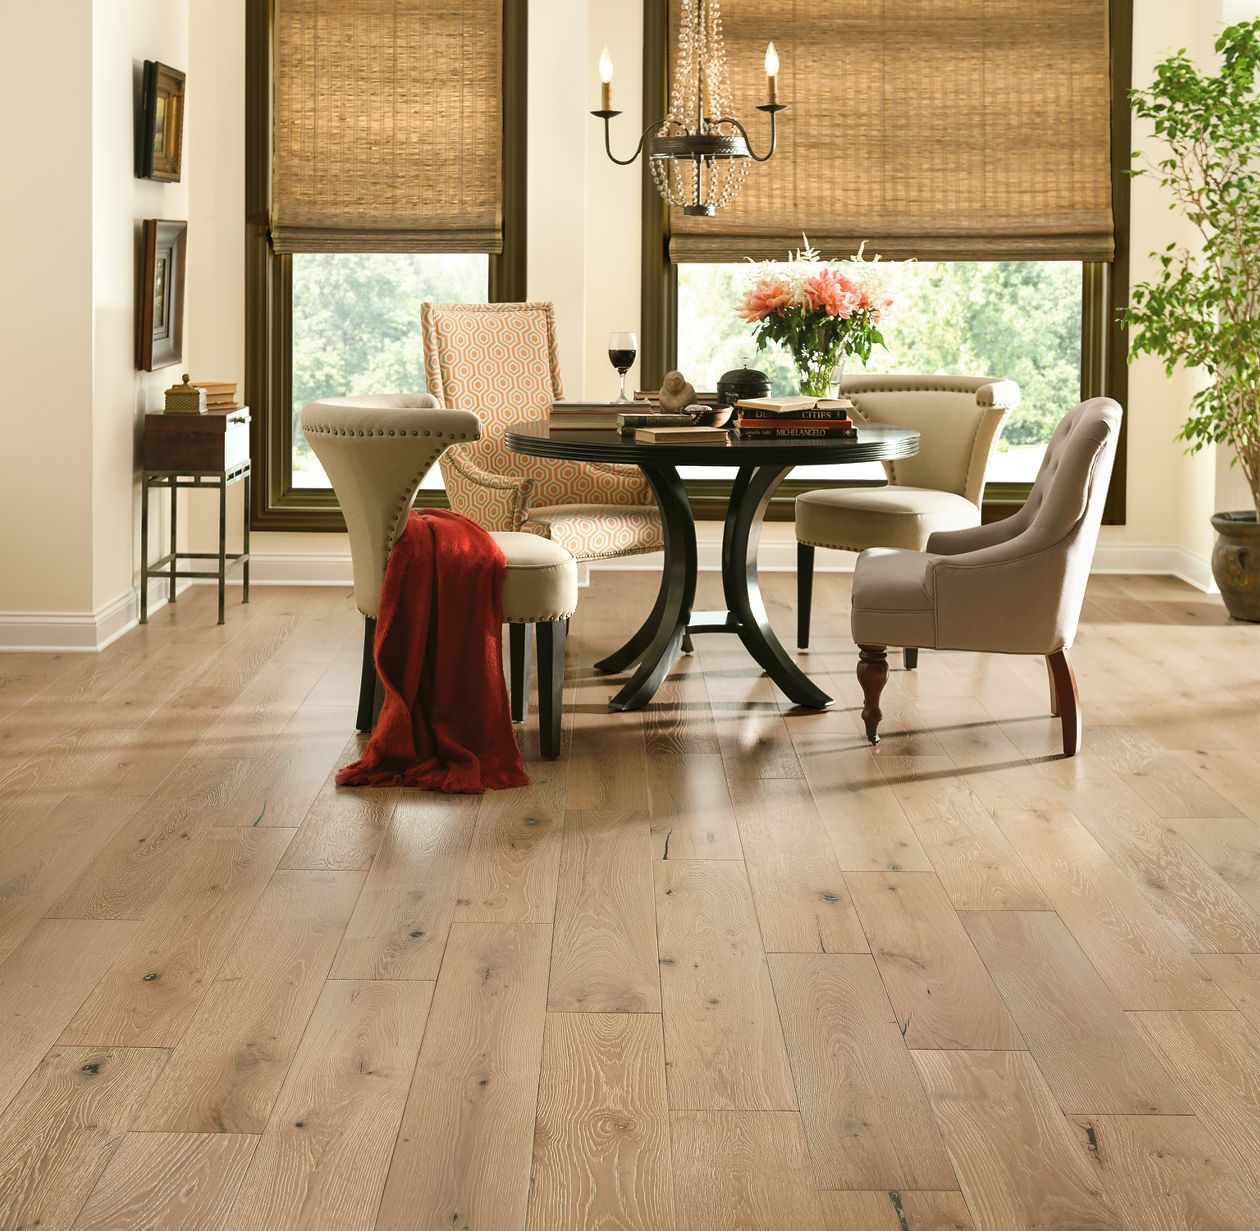 Learn more about Armstrong White Oak Limed Dove Tint and